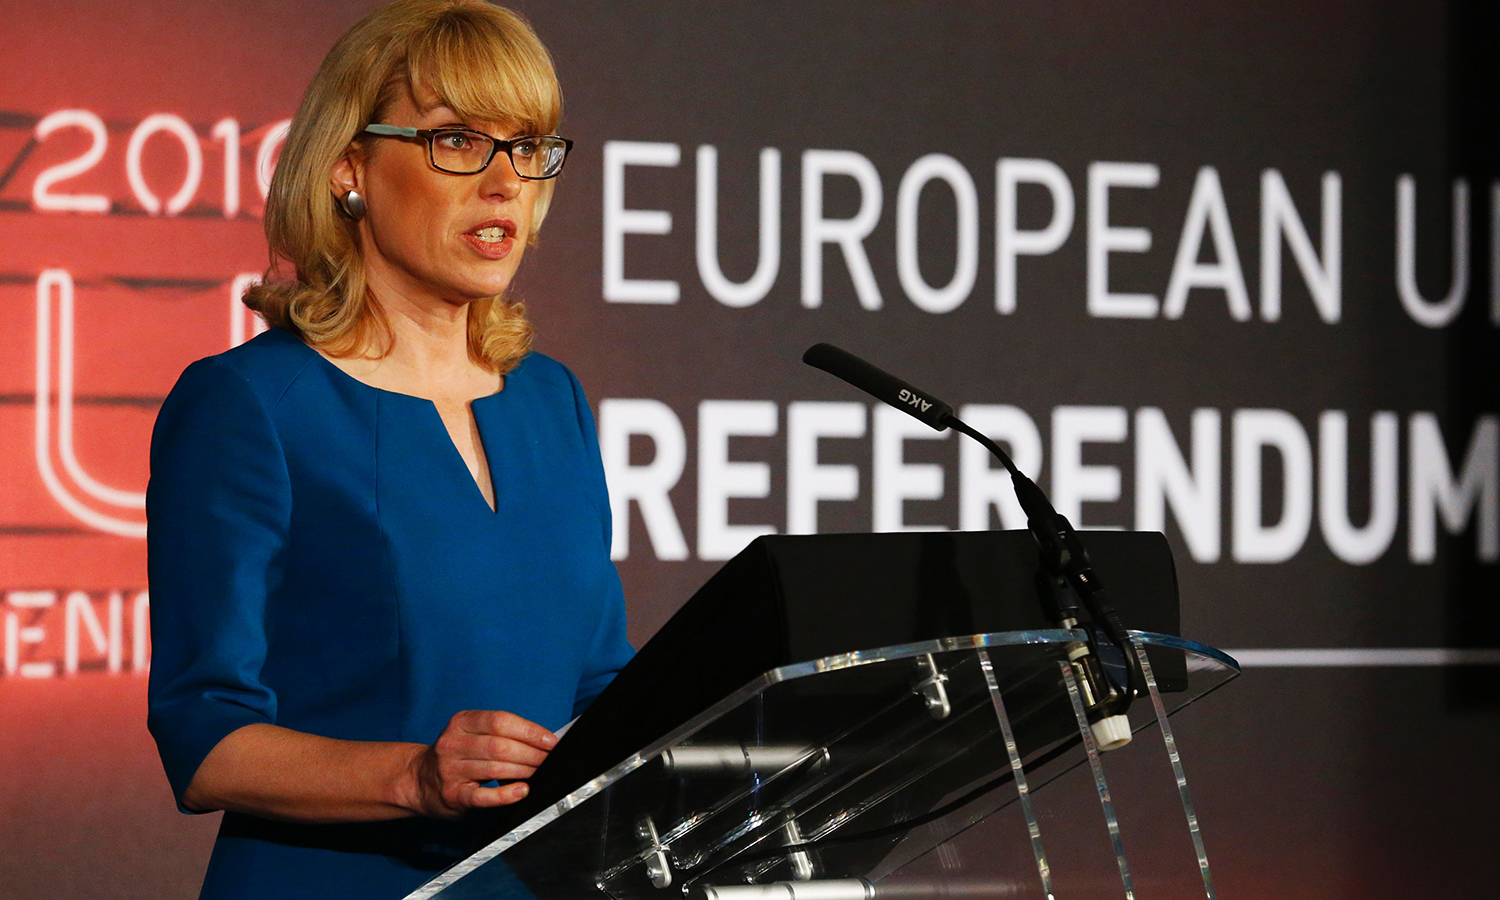 Jenny Watson, Chairperson of the United Kingdom Electoral Commission announces the overall outcome of the EU referendum at the Manchester Town Hall in Manchester, northern England on June 24, 2016. Britain has voted to break out of the European Union, striking a thunderous blow against the bloc and spreading panic through world markets Friday as sterling collapsed to a 31-year low. / AFP PHOTO / Lindsey Parnaby